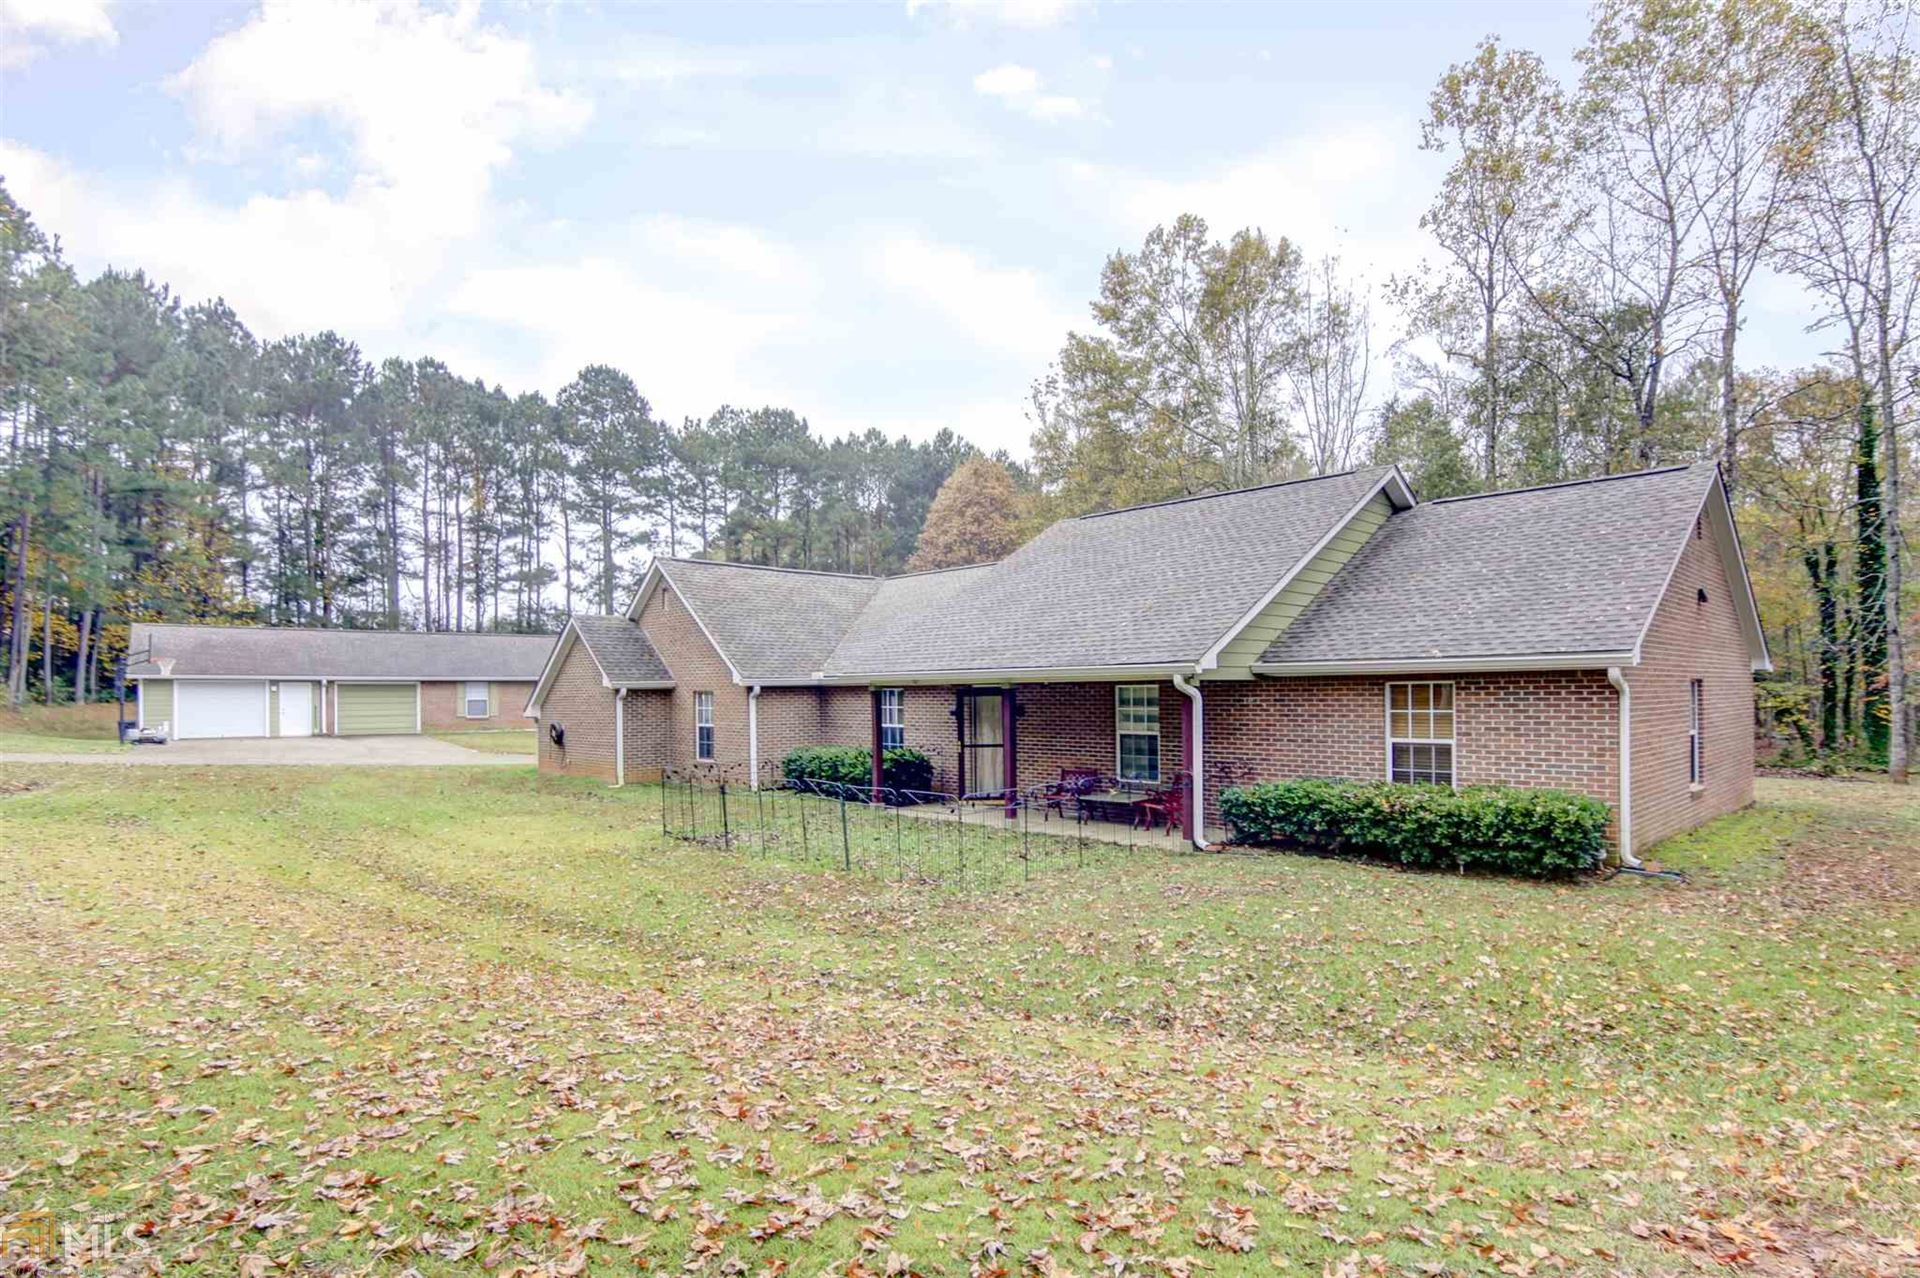 2293 Elders Mill, Senoia, GA 30276 - MLS#: 8886129